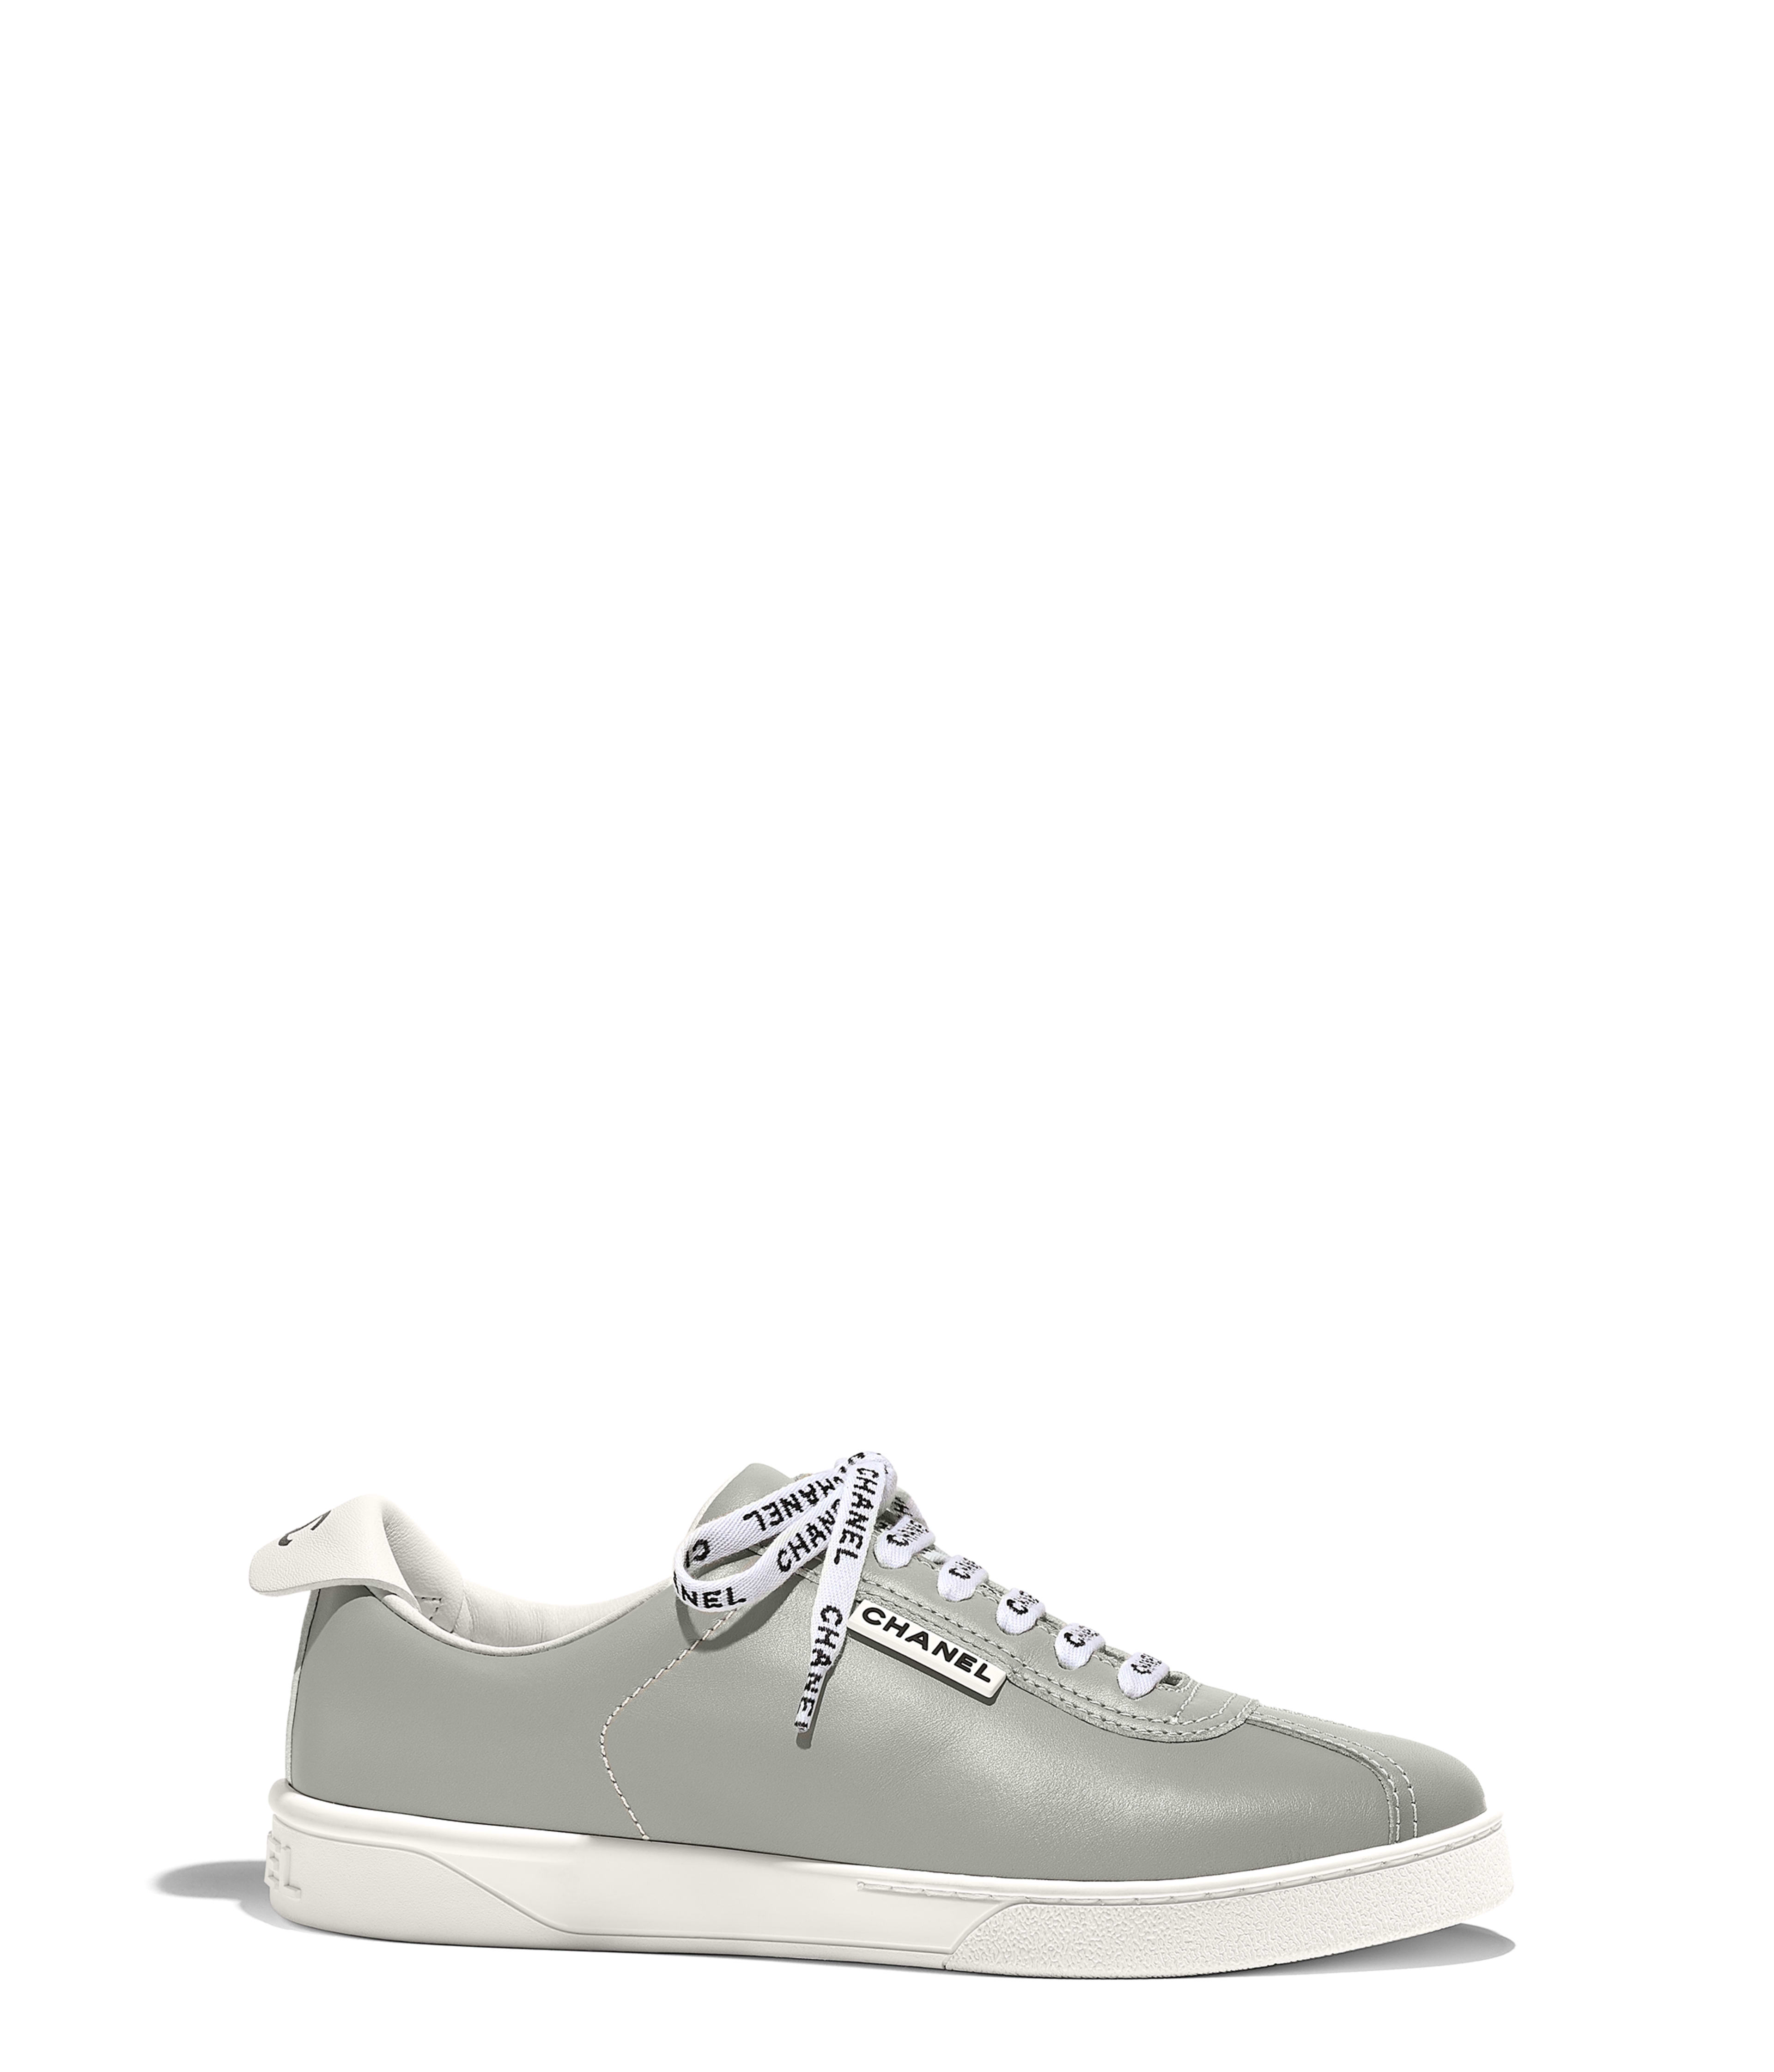 Sneakers - Shoes  8d86134354